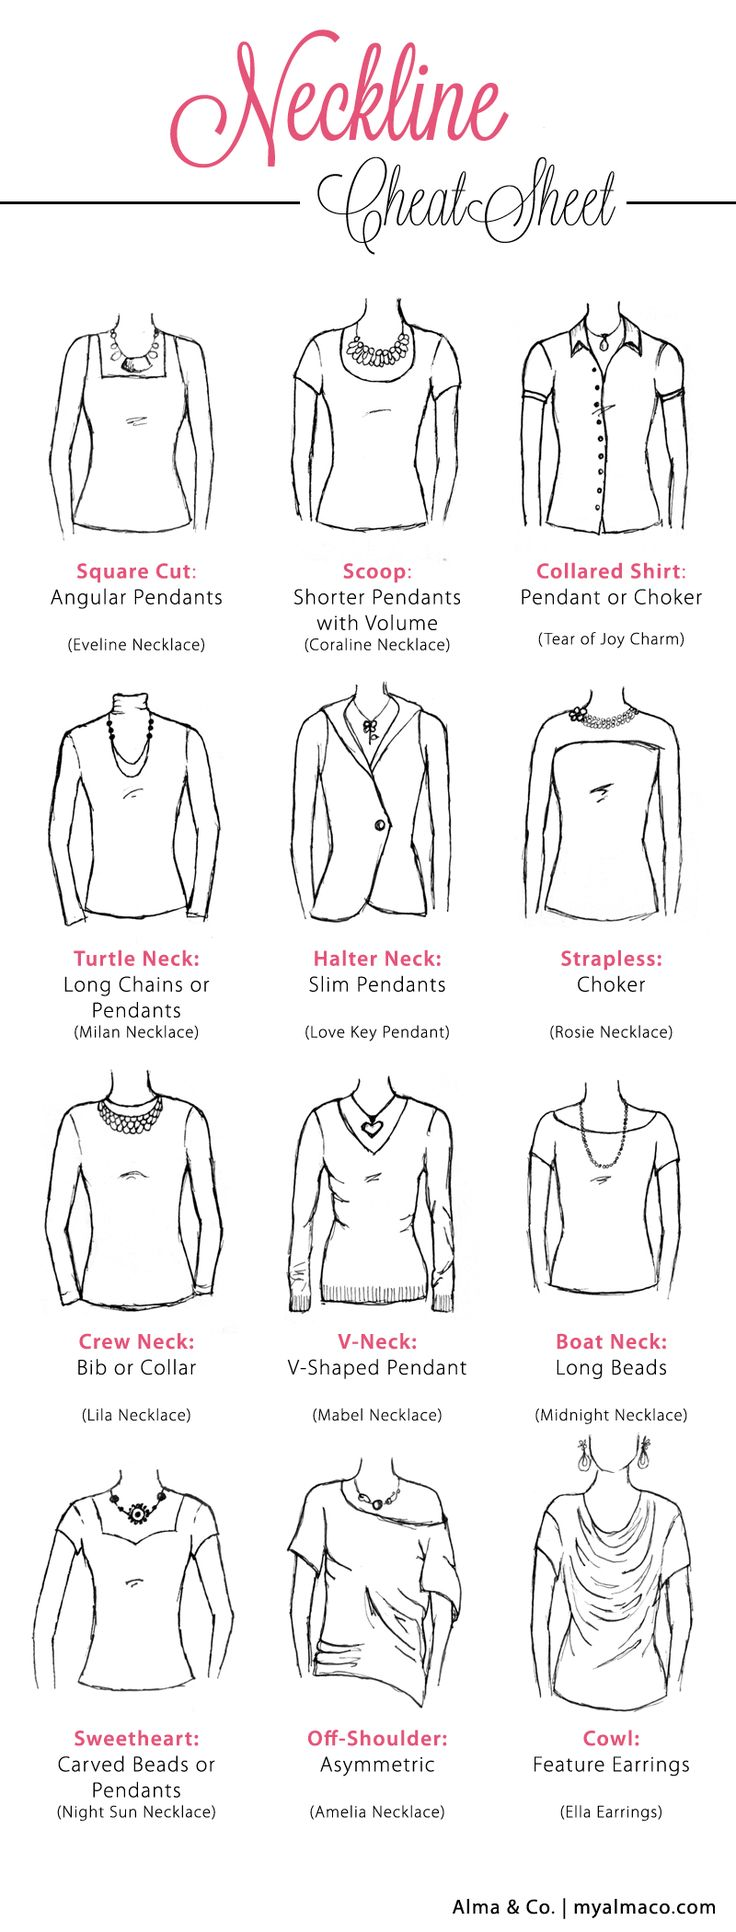 Neckline Cheat Sheet | Alma & Co. | How to pair your favorite dress with that perfect piece of jewerly